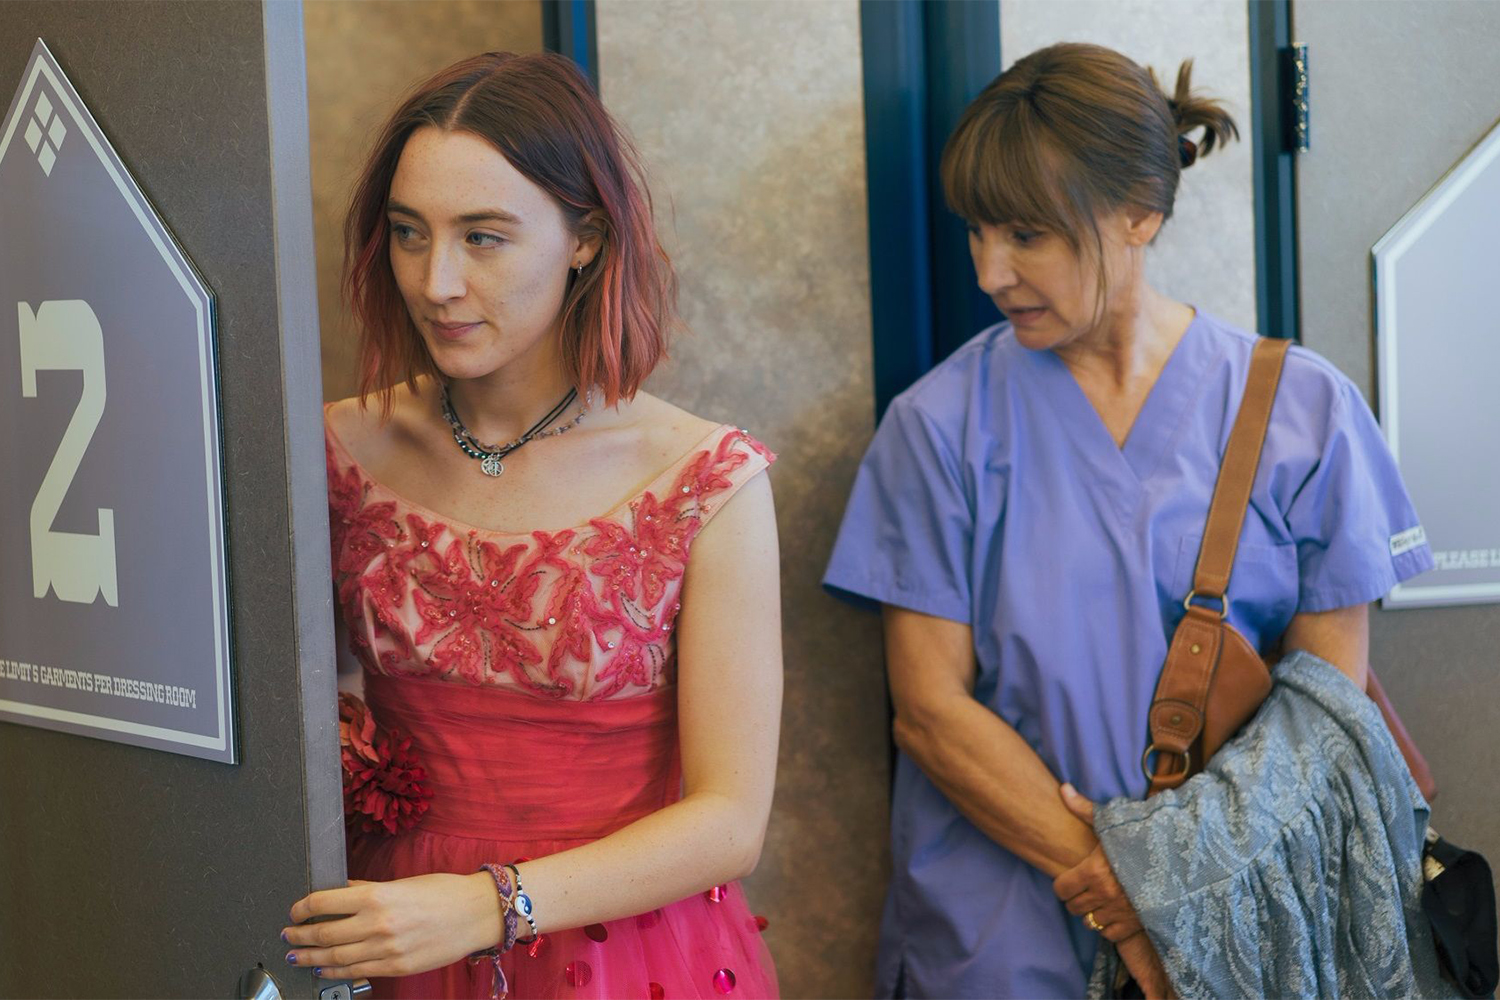 'Lady Bird' sets record for highest approval rating on Rotten Tomatoes